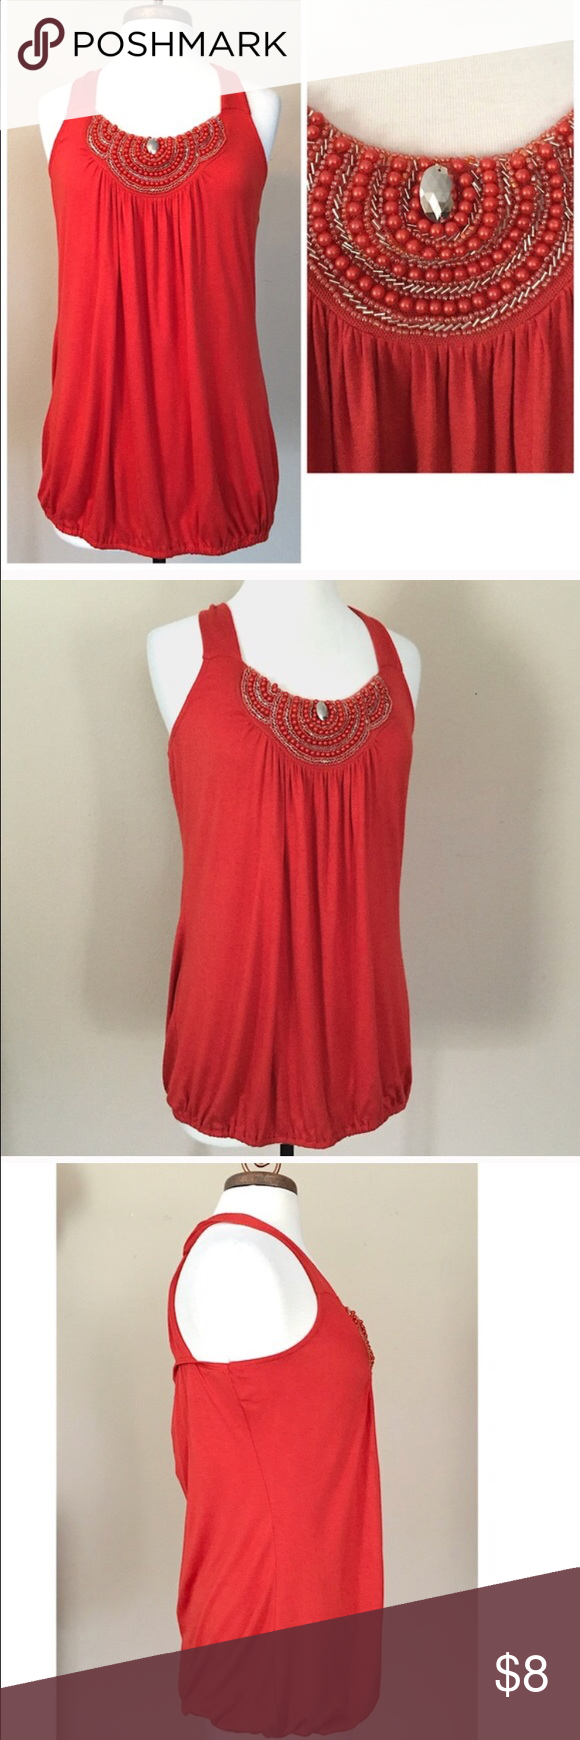 Dark coral embellished top 💞 Simply Irresistible tank top, super soft with gorgeous beaded embellishments on front & cross cross straps in back. EUC. Dark coral color. No flaws. 💞 simply irresistible Tops Tank Tops